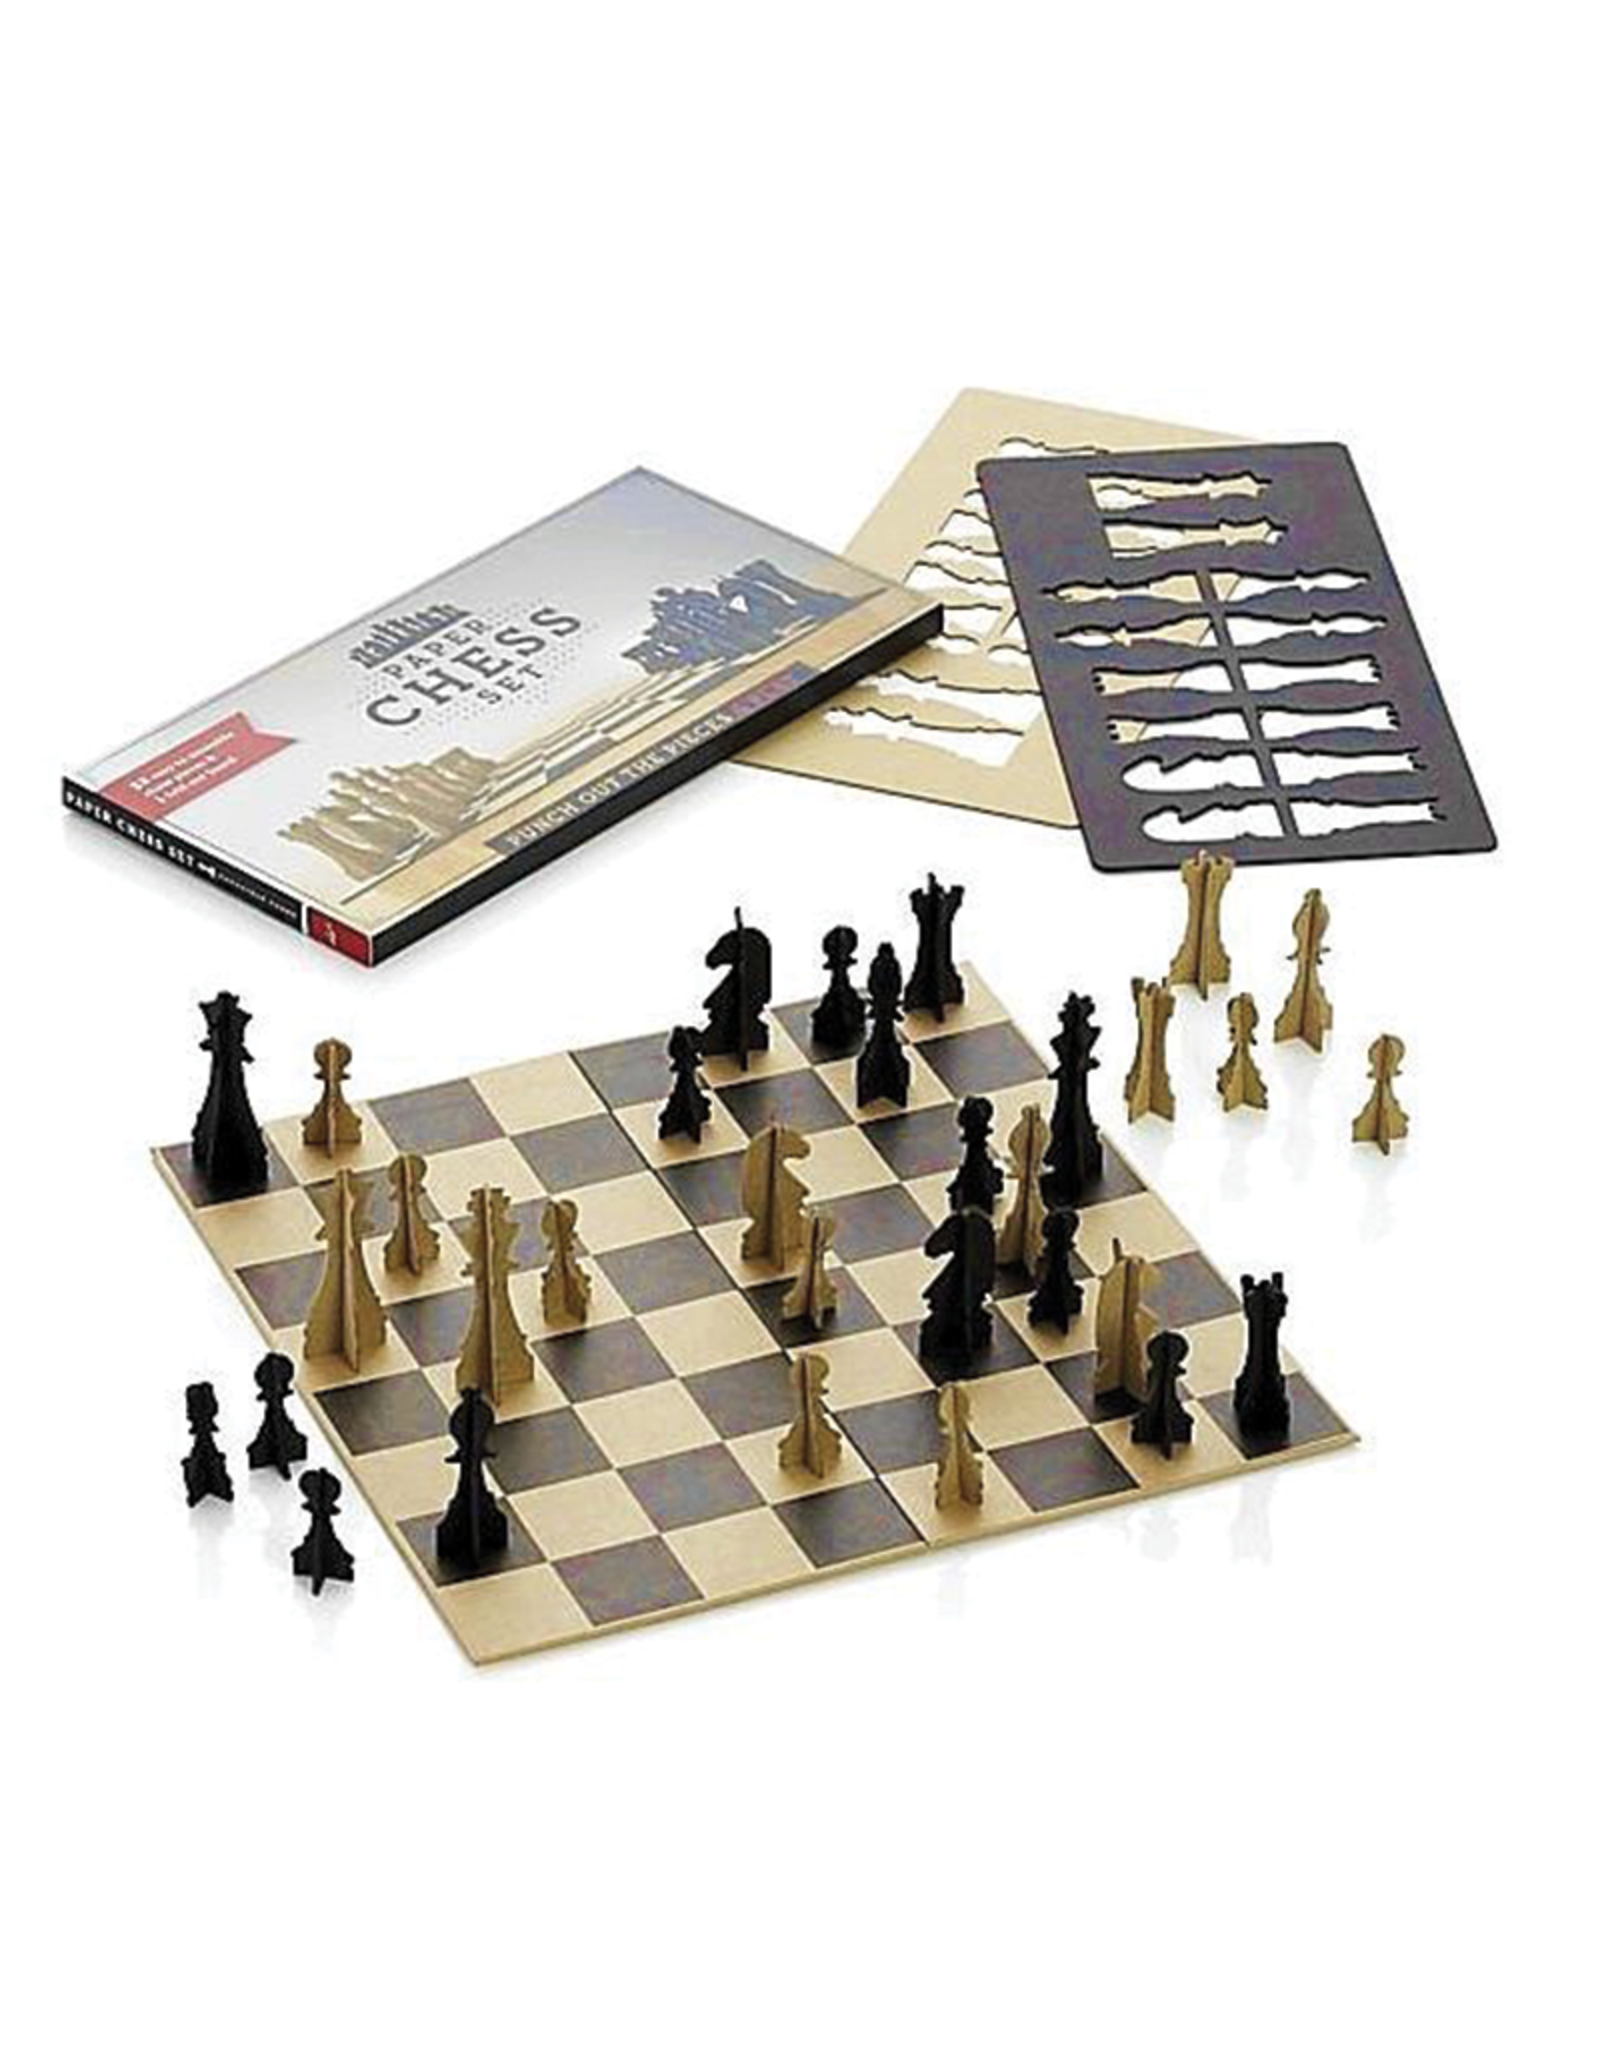 Punch-Out Paper Chess Set